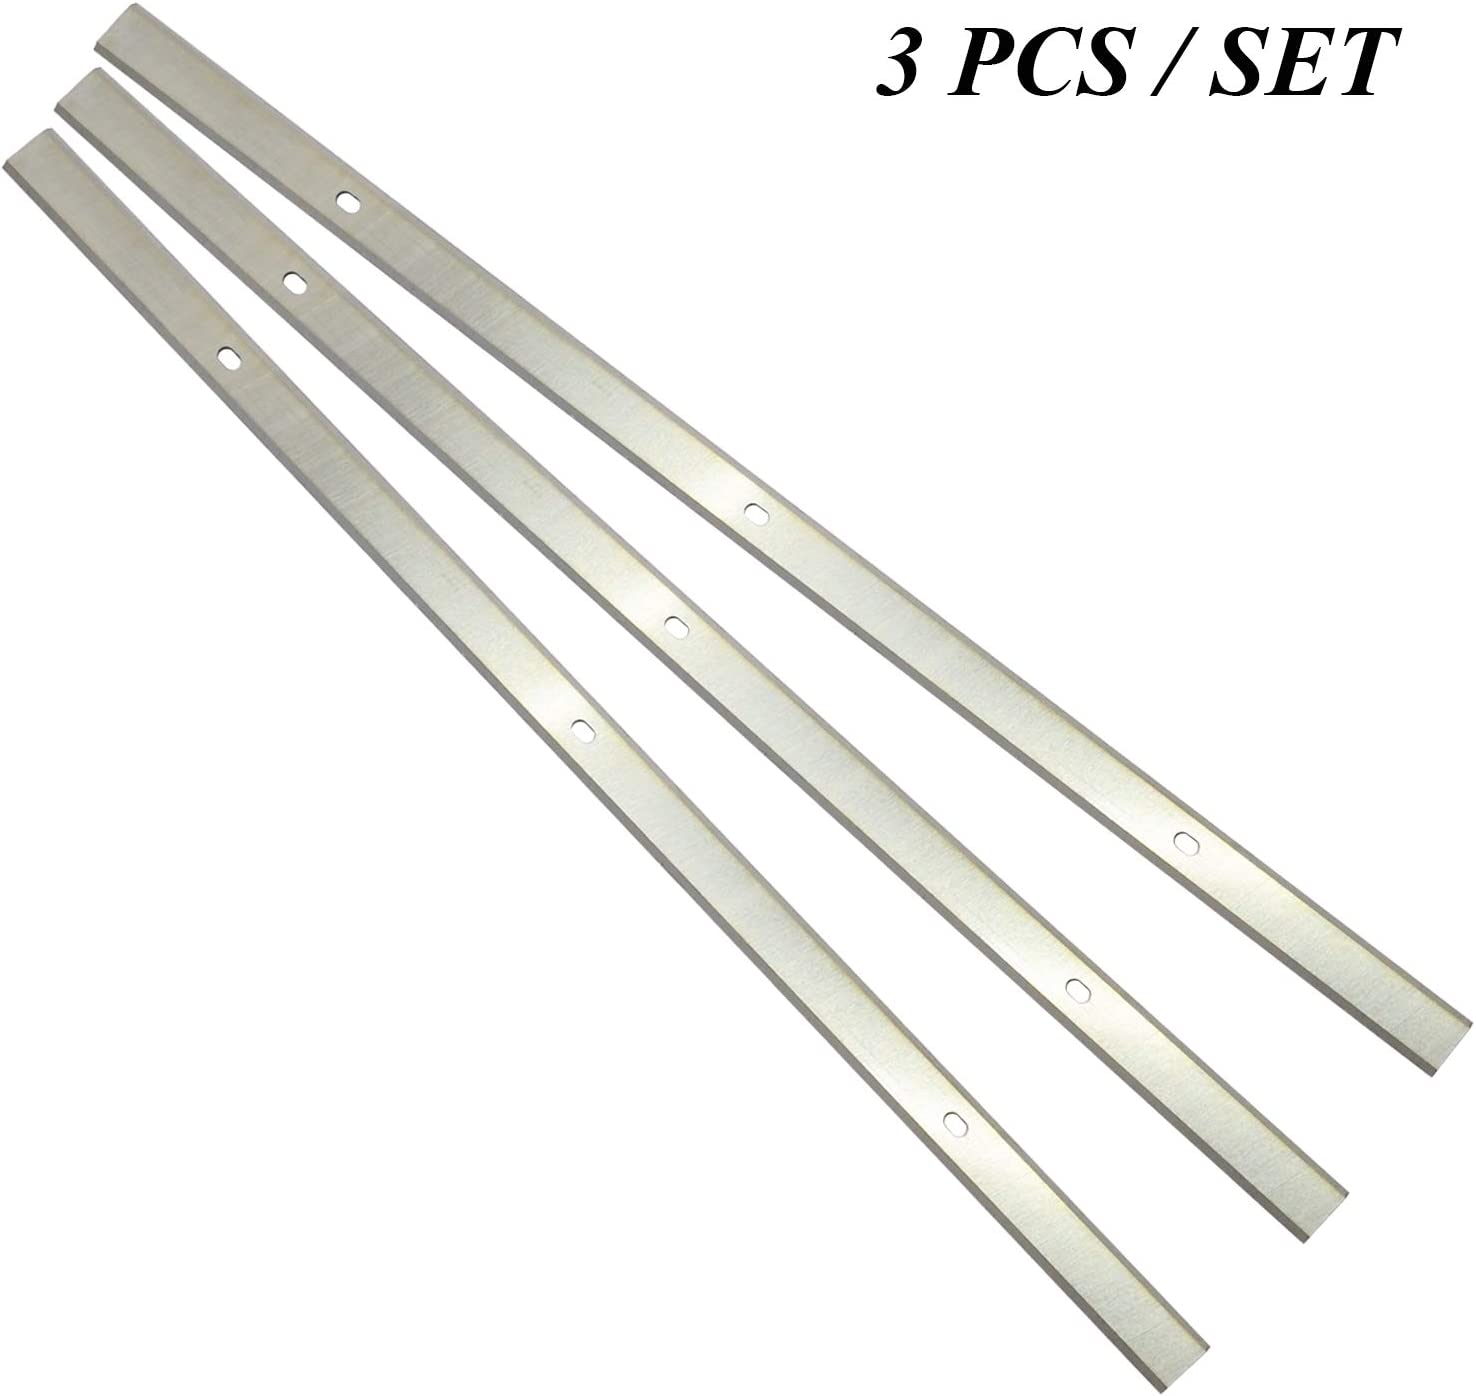 """13/"""" REPLACEMENT KNIVES DELTA 22-591 22-555 22-580 22-590 Portable Planer 2 Pack"""